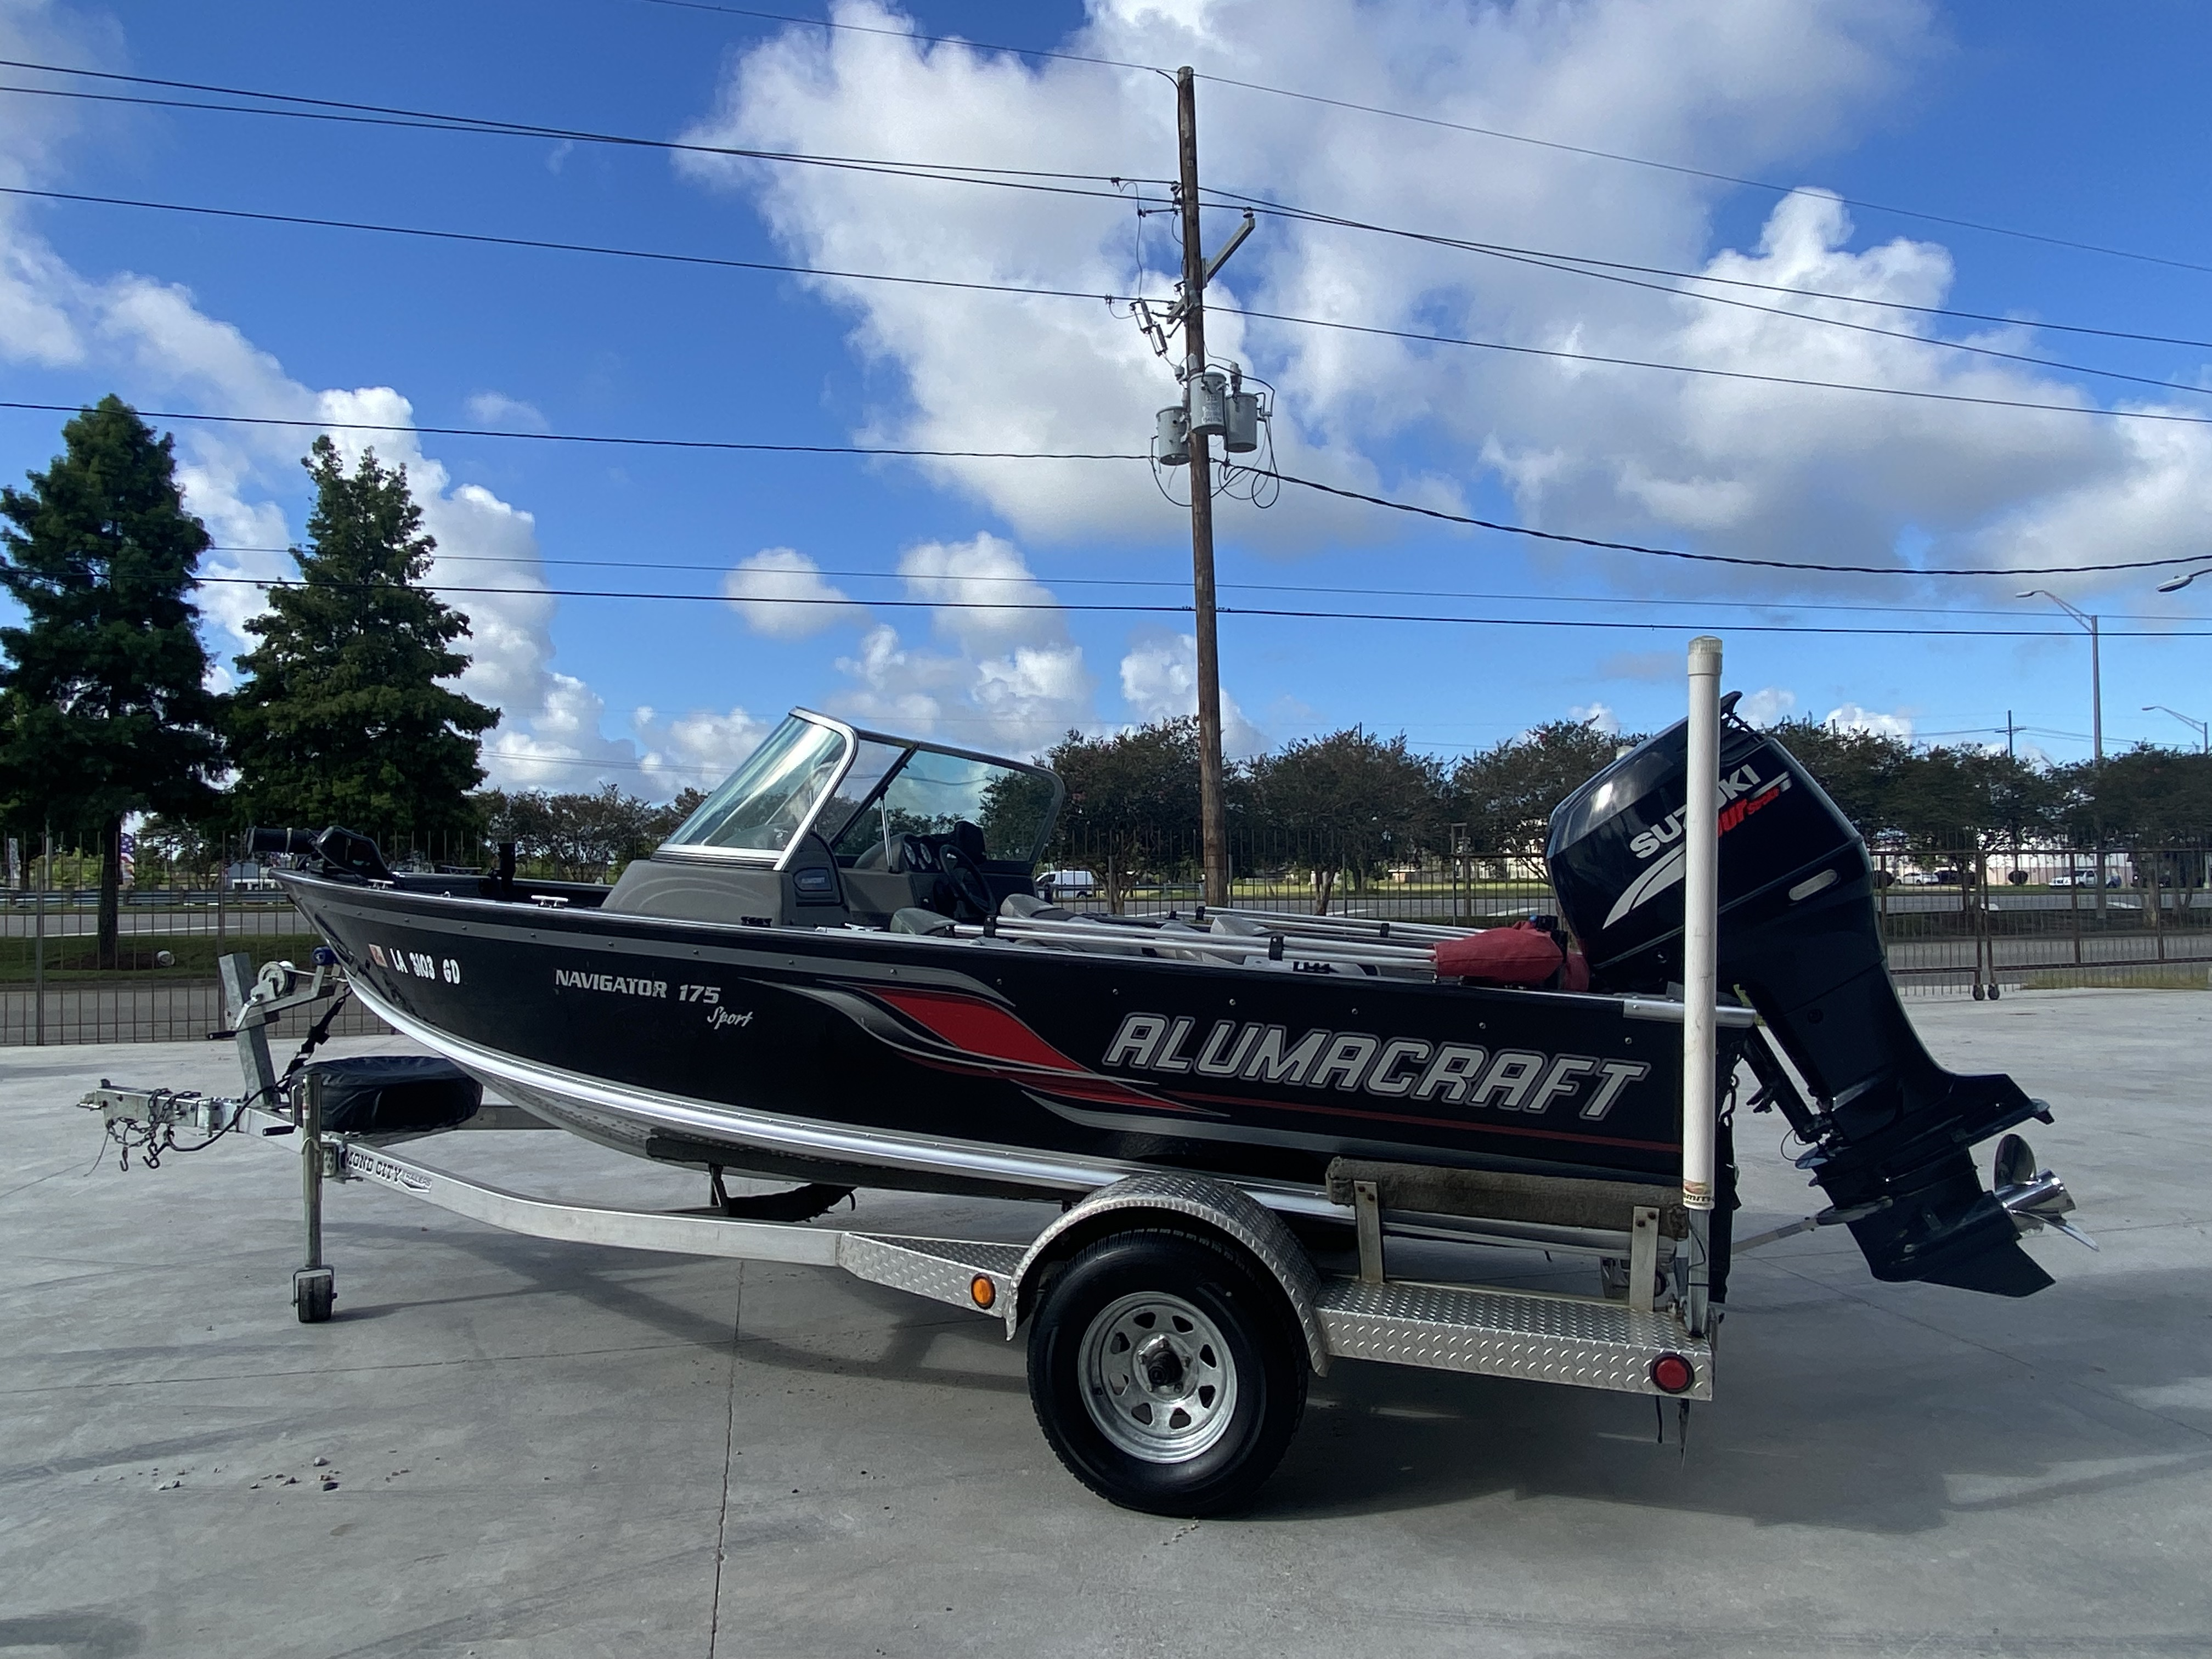 2008 Alumacraft boat for sale, model of the boat is 175 & Image # 11 of 12